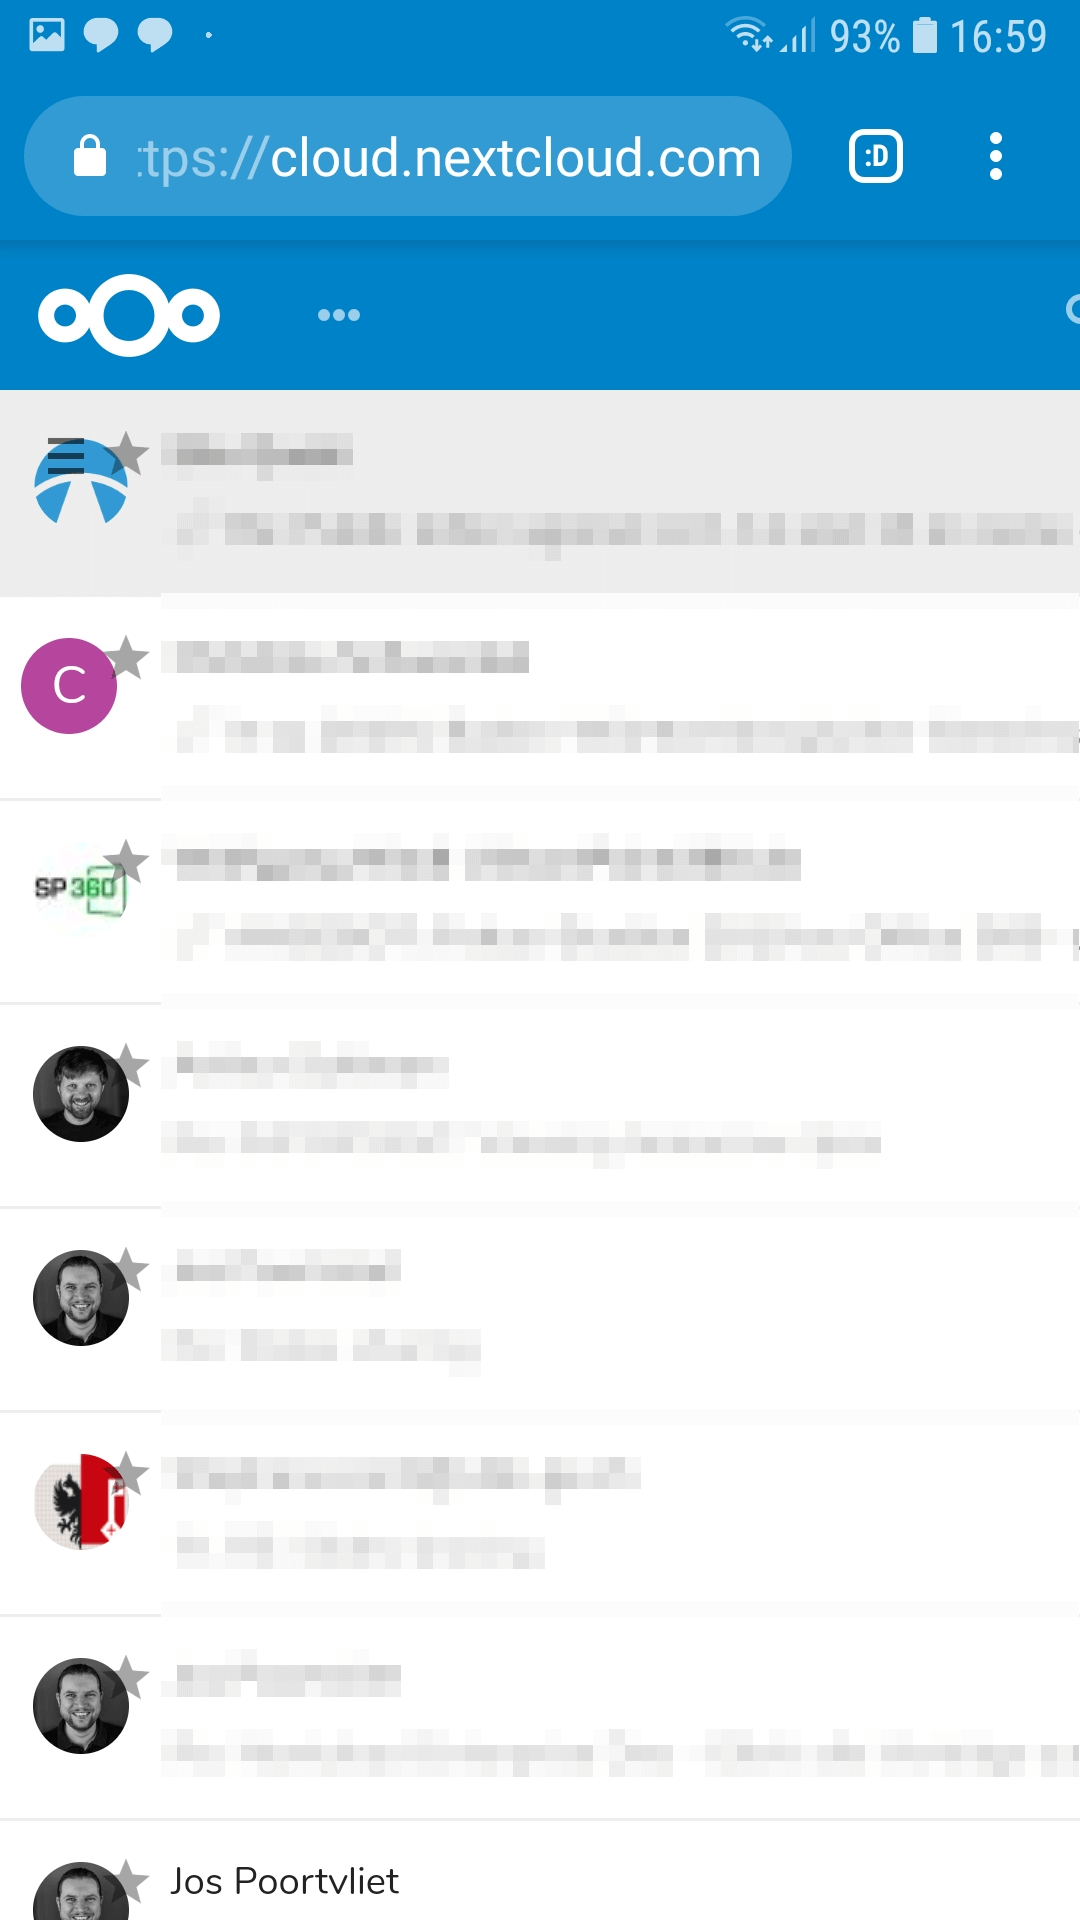 Scrolling down on mobile doesn't load more mail (Chrome